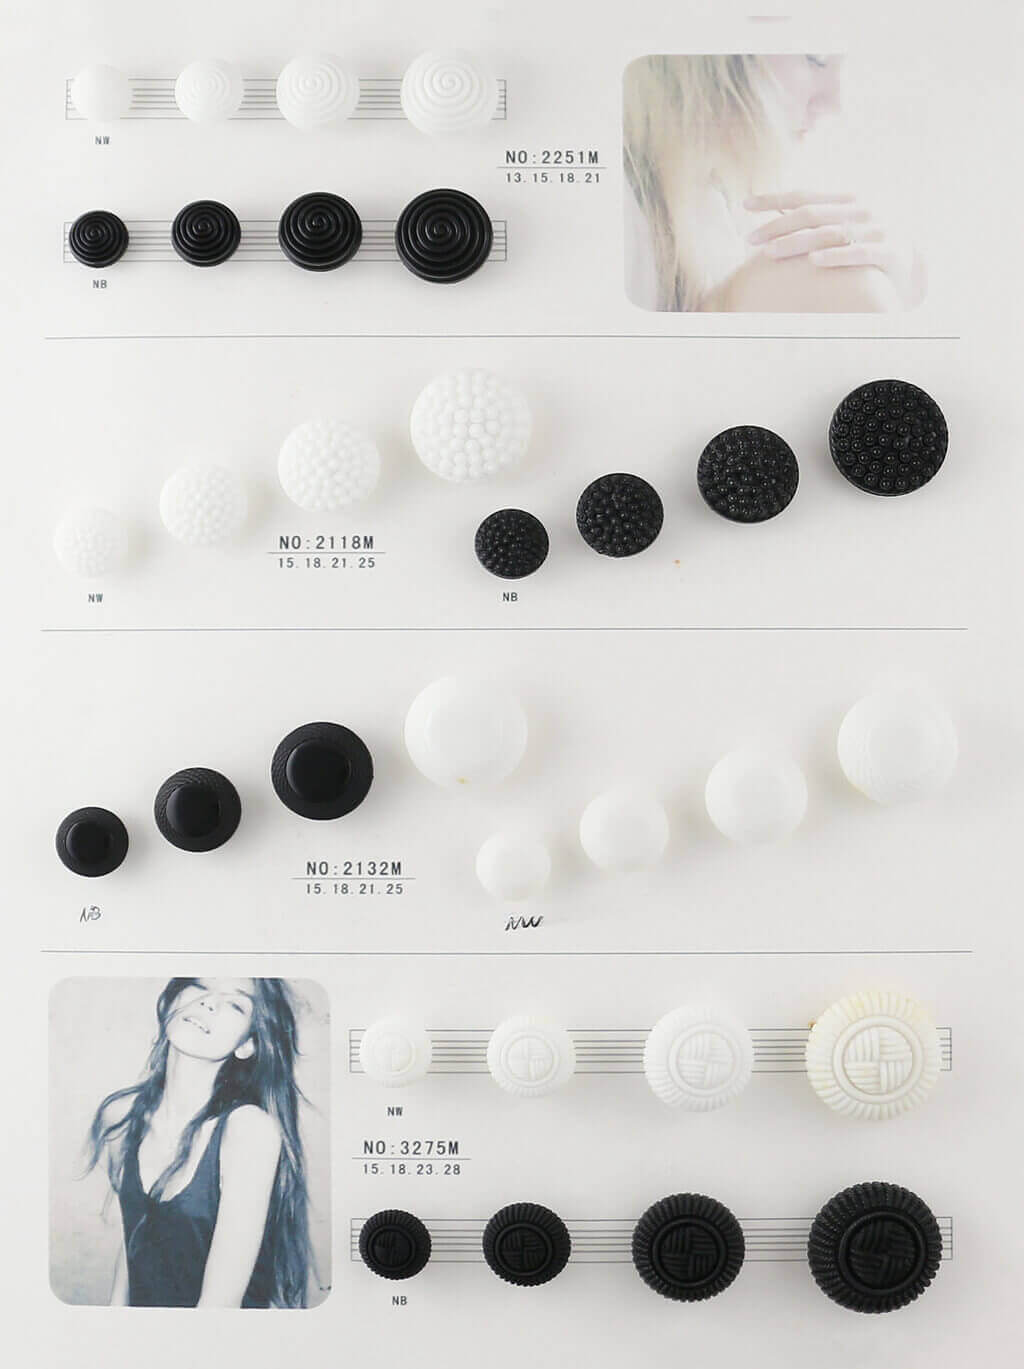 shank nylon button catalogue